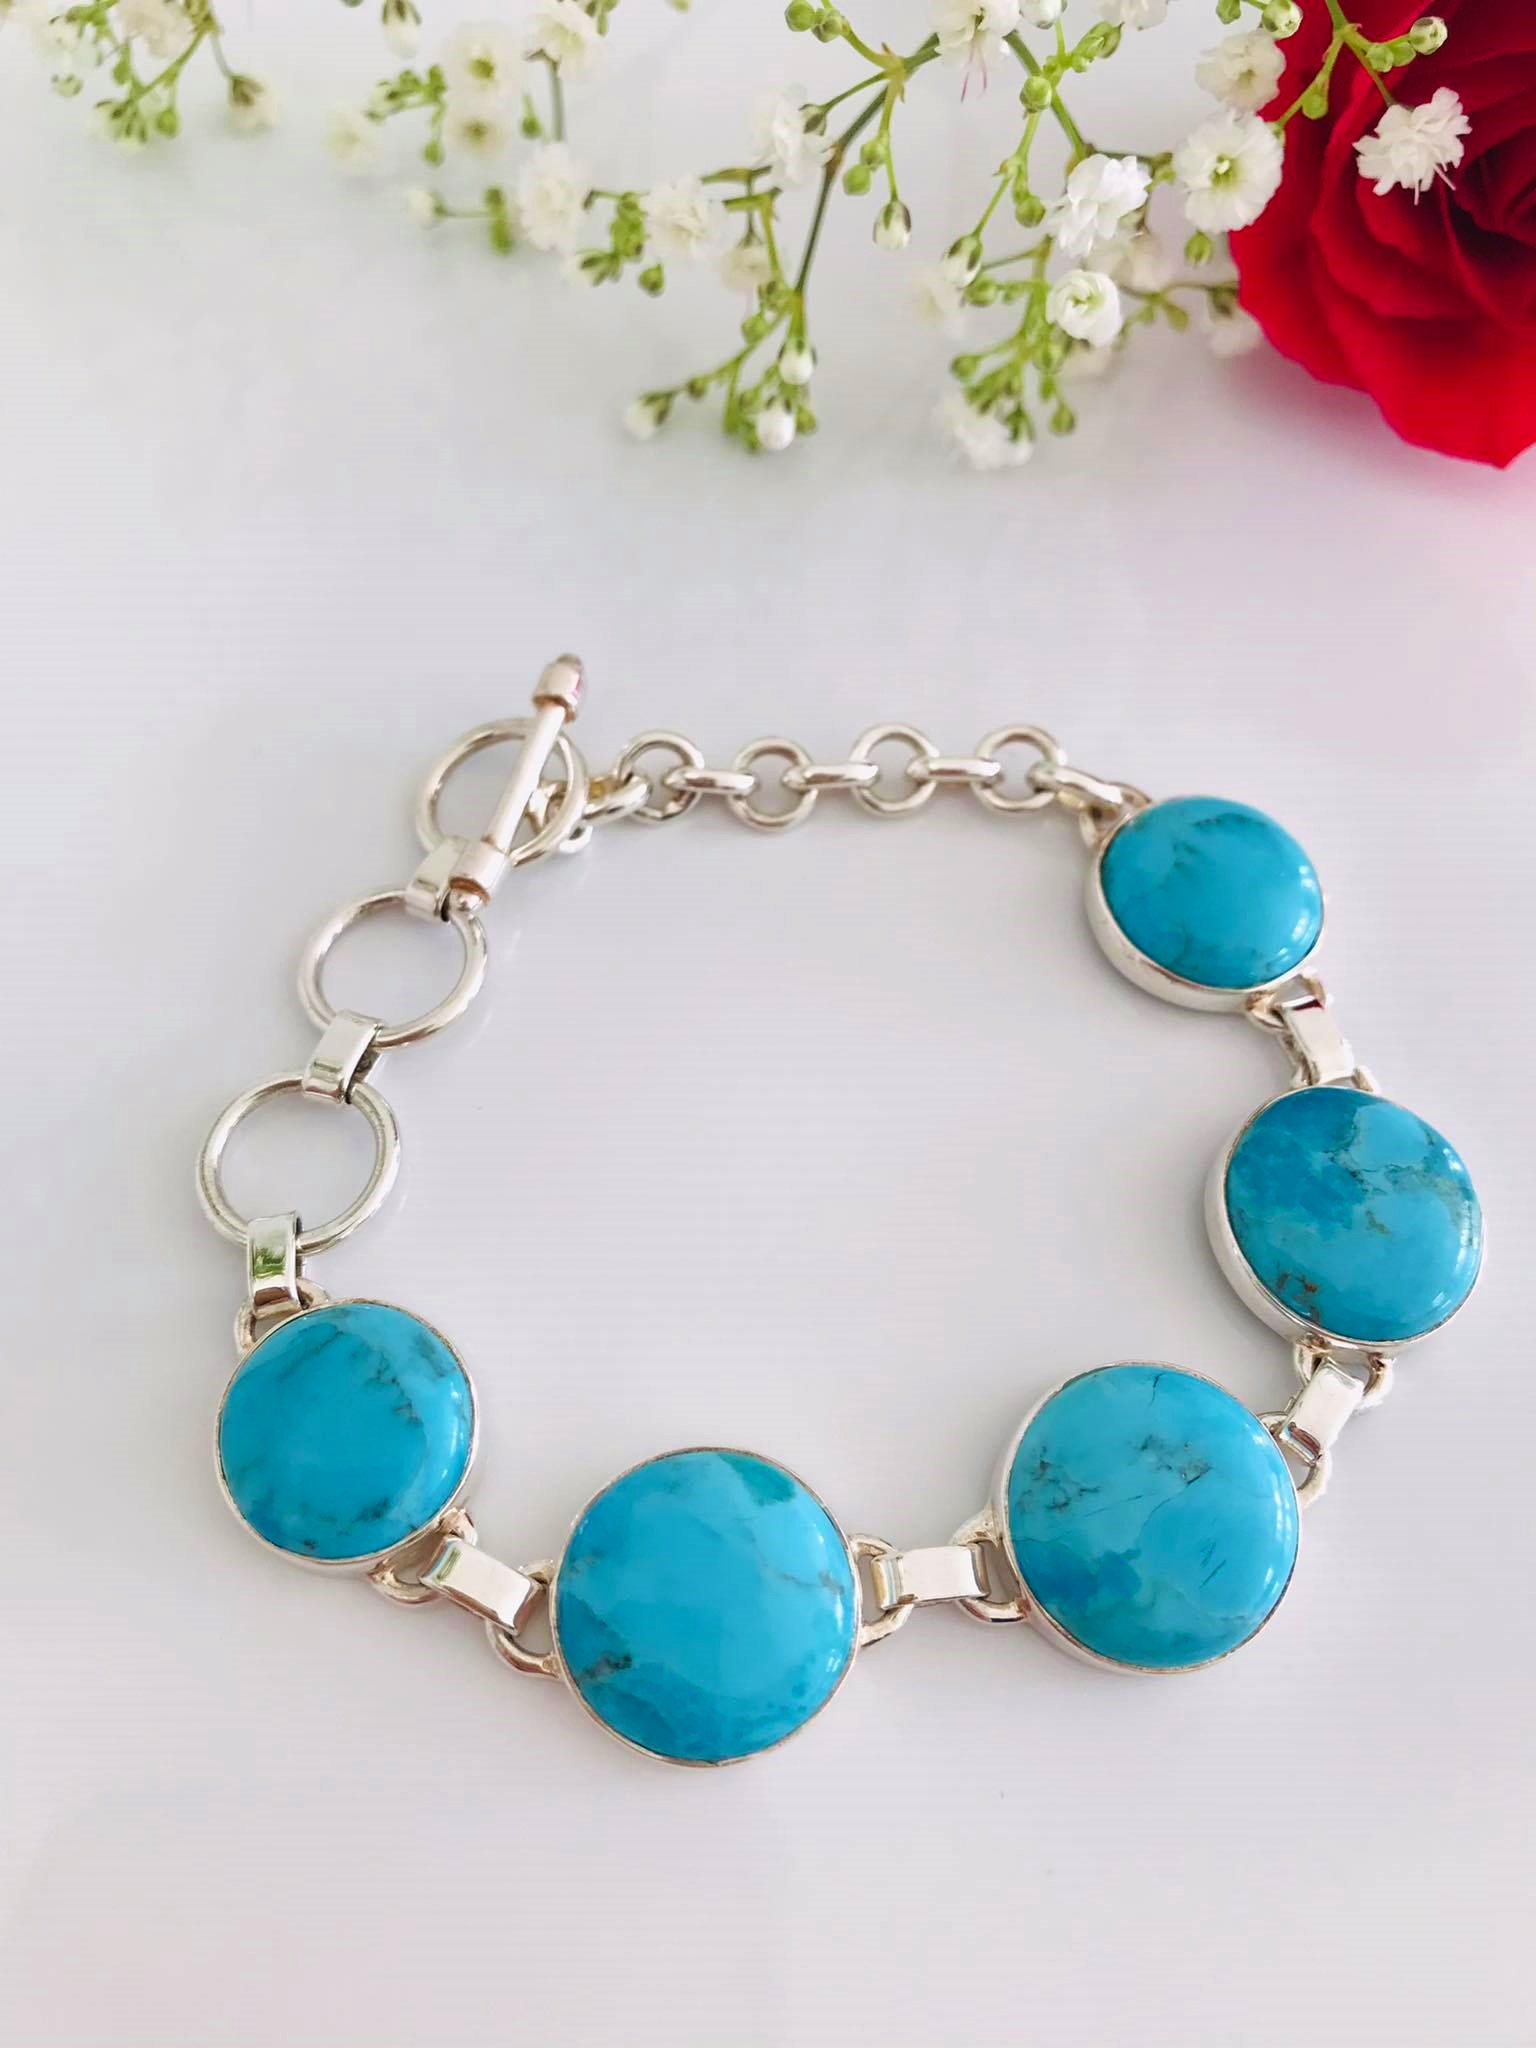 Round /Oval  Blue Mojave Turquoise Sterling Silver Bracelet Image